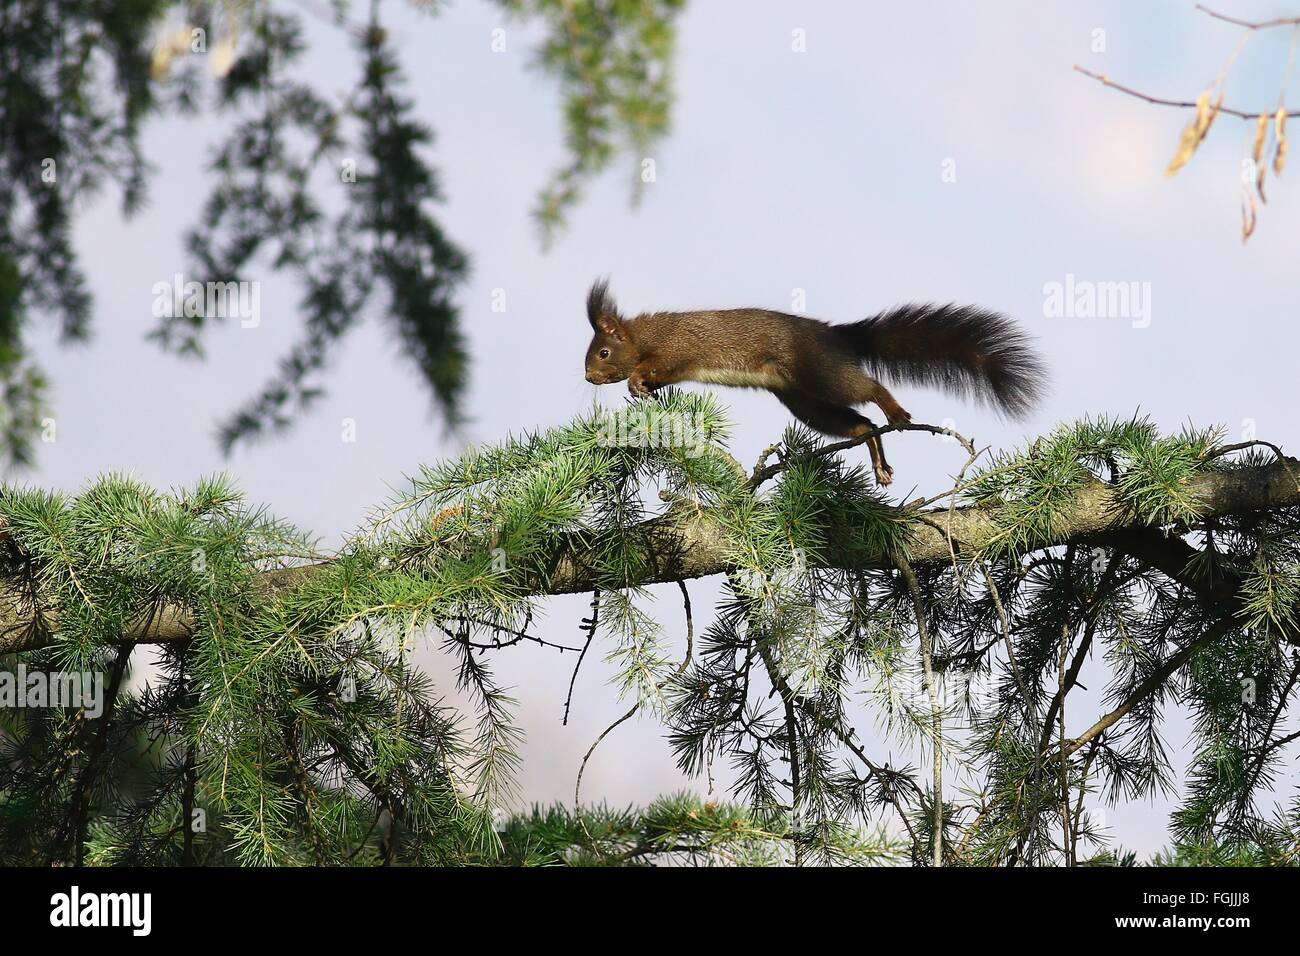 Squirrel running and jumping on a pine tree branch - Stock Image